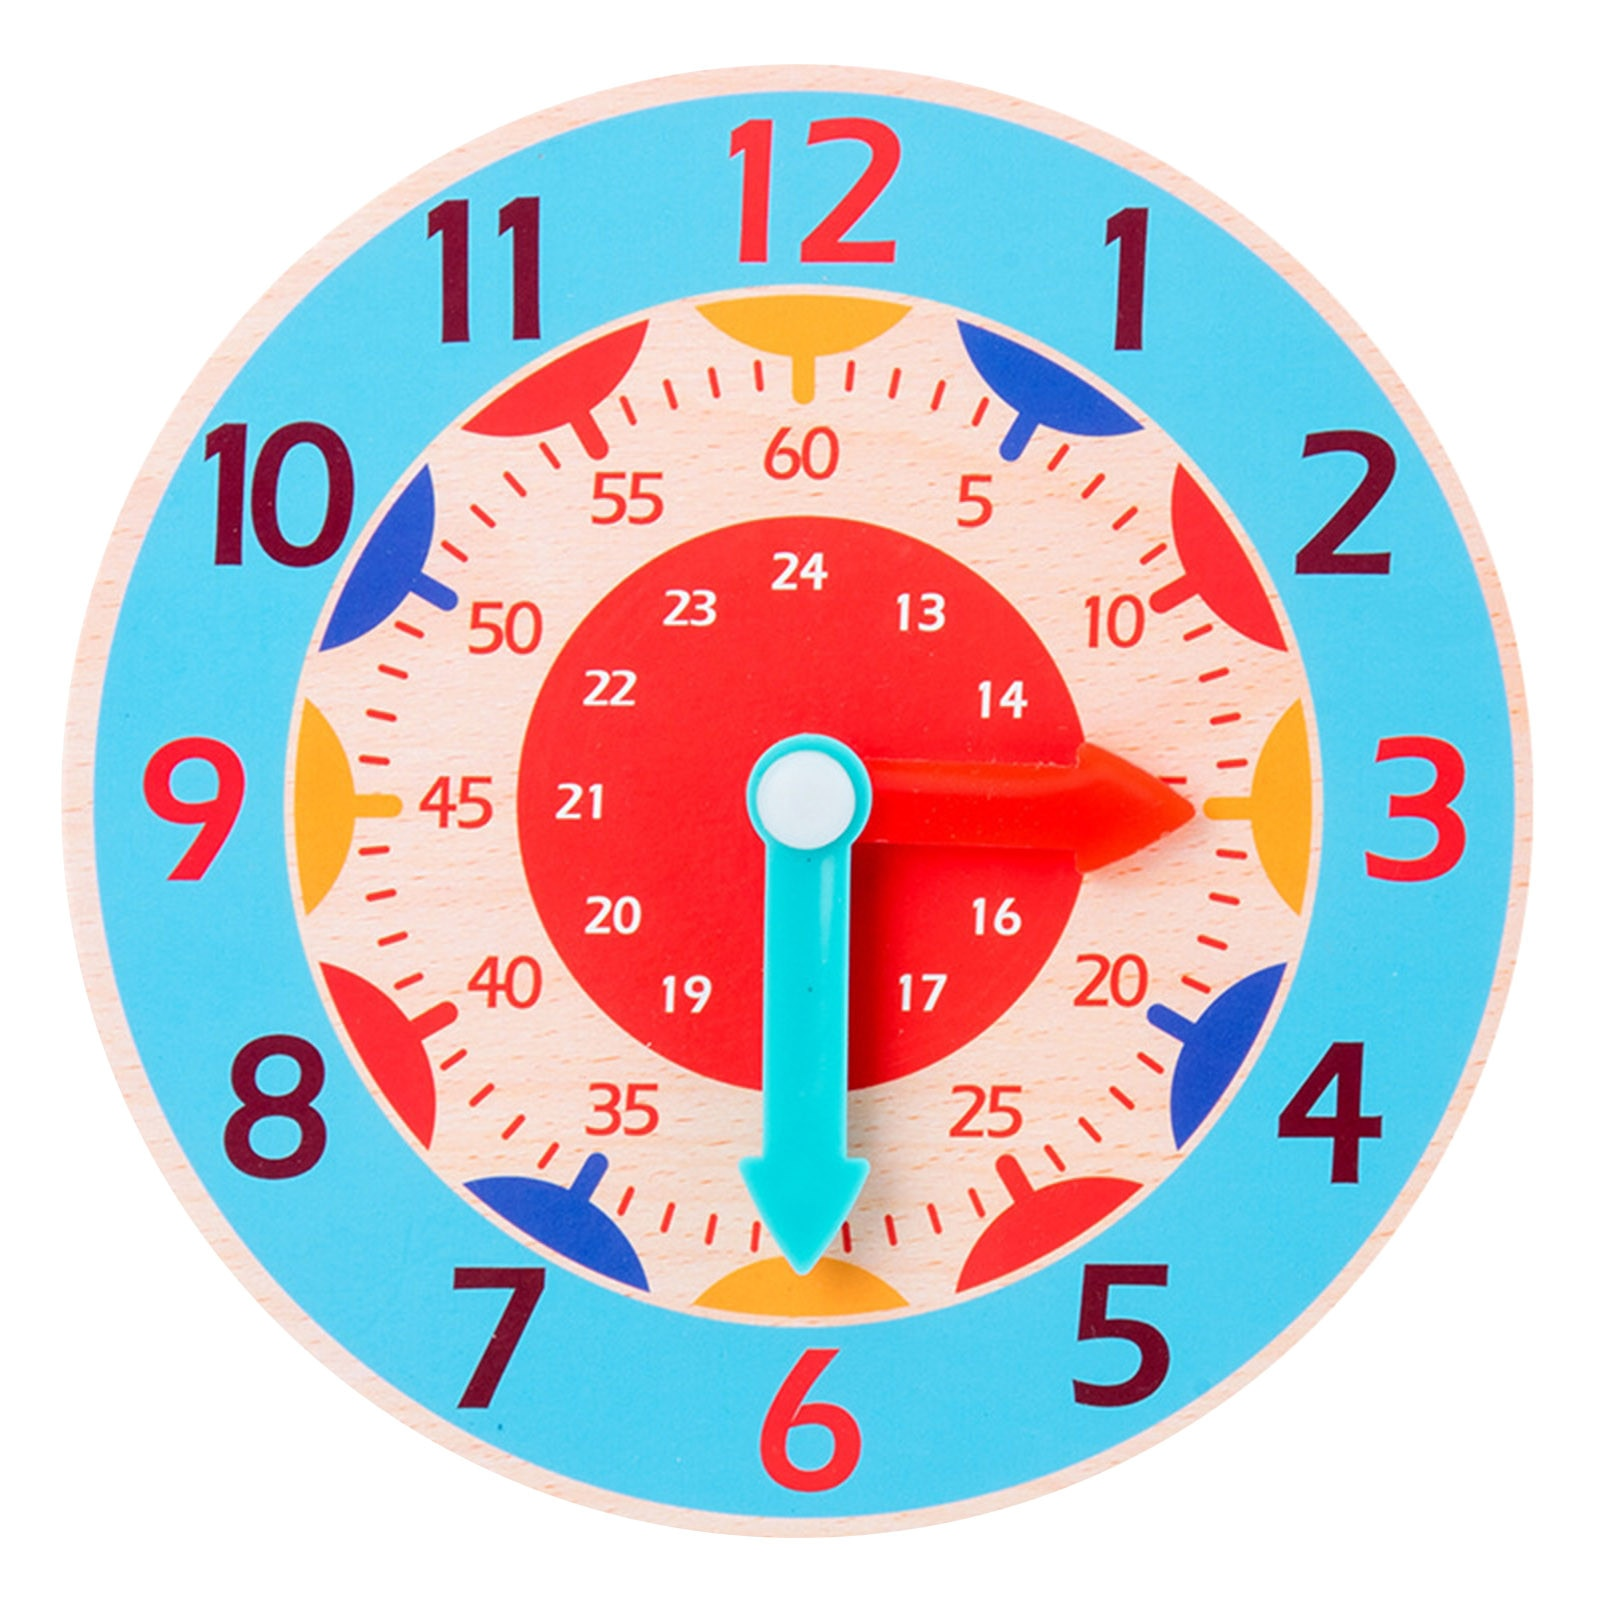 Wooden Digital Clock Toys For Kids Time Enlightenment Digital Learning Clock Watch Model Learning To